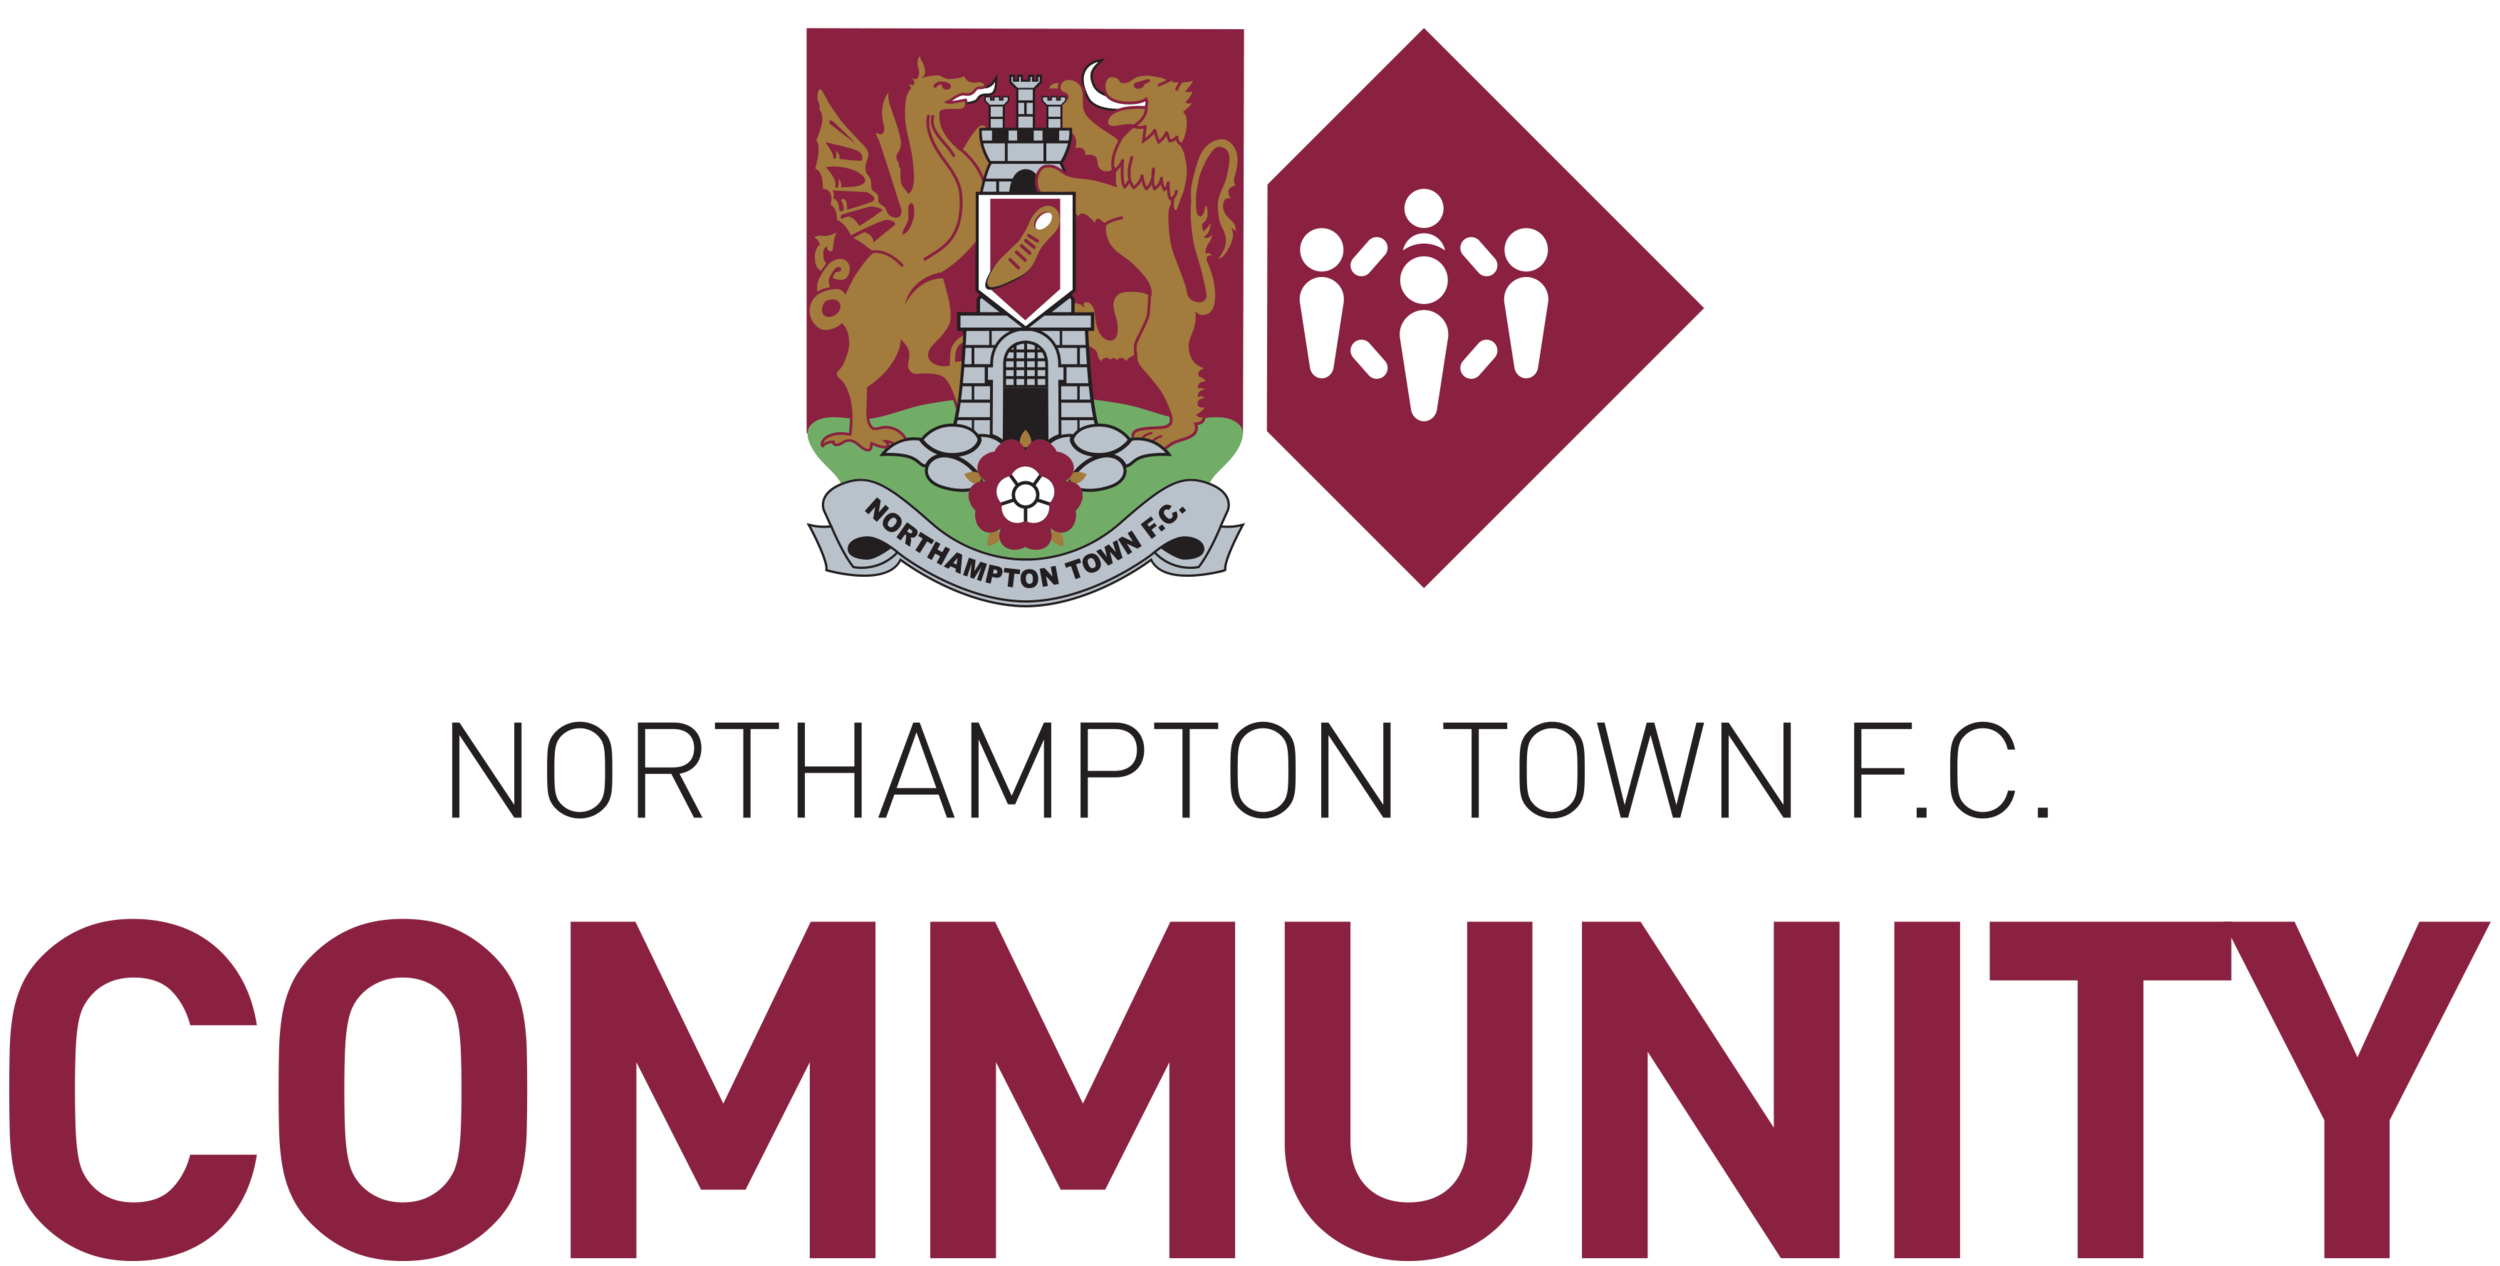 Interested in joining us?     Do you want to become a trustee of the Northampton Town FC Community Trust or would you like to find out more information?    Get in touch now! Contact our CEO, Phillip Smith on Phillip.Smith@ntfc.co.uk or call 01604 683726